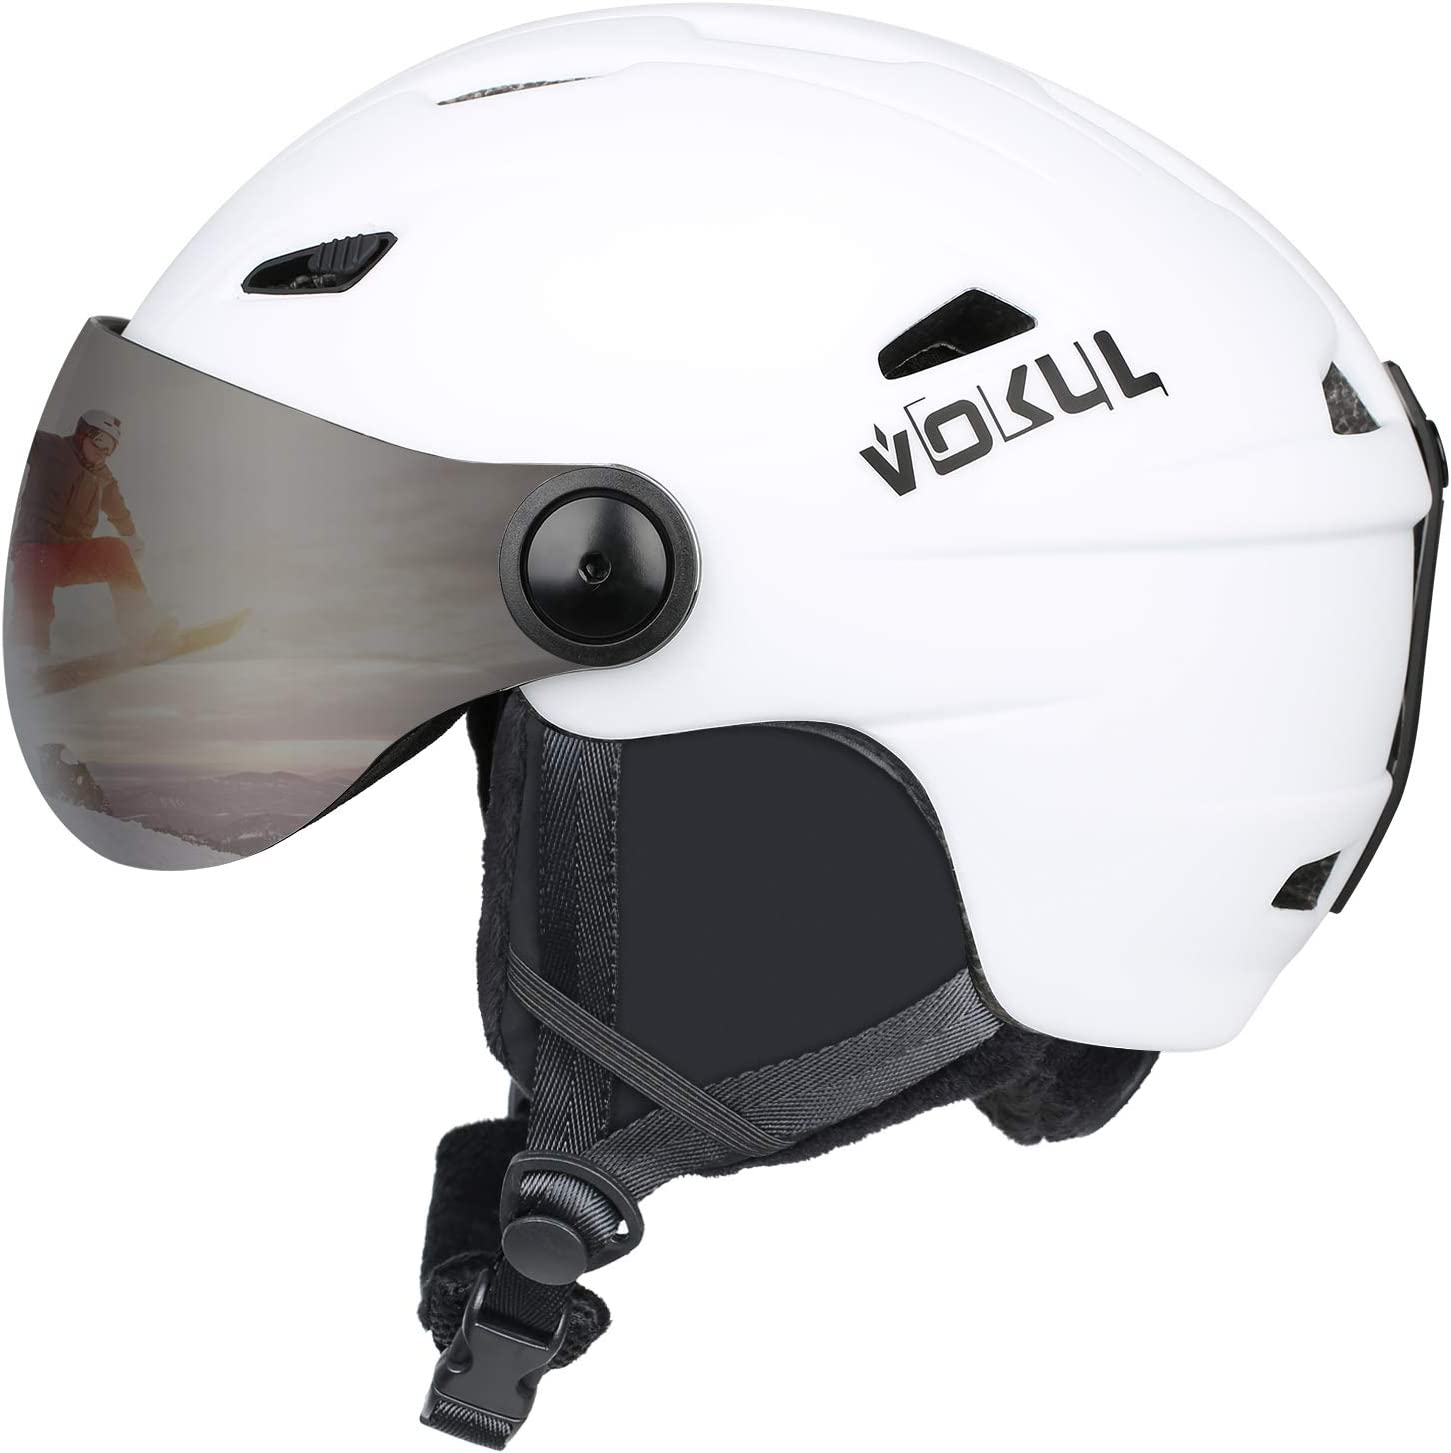 VOKUL Ski Helmet, Snowboard Helmet – Climate Control Venting, Dial Fit, Goggles Compatible, Removable Fleece Liner Ear Pads, Safety-Certified Snow Helmet Men Women for Kids Youths Adults